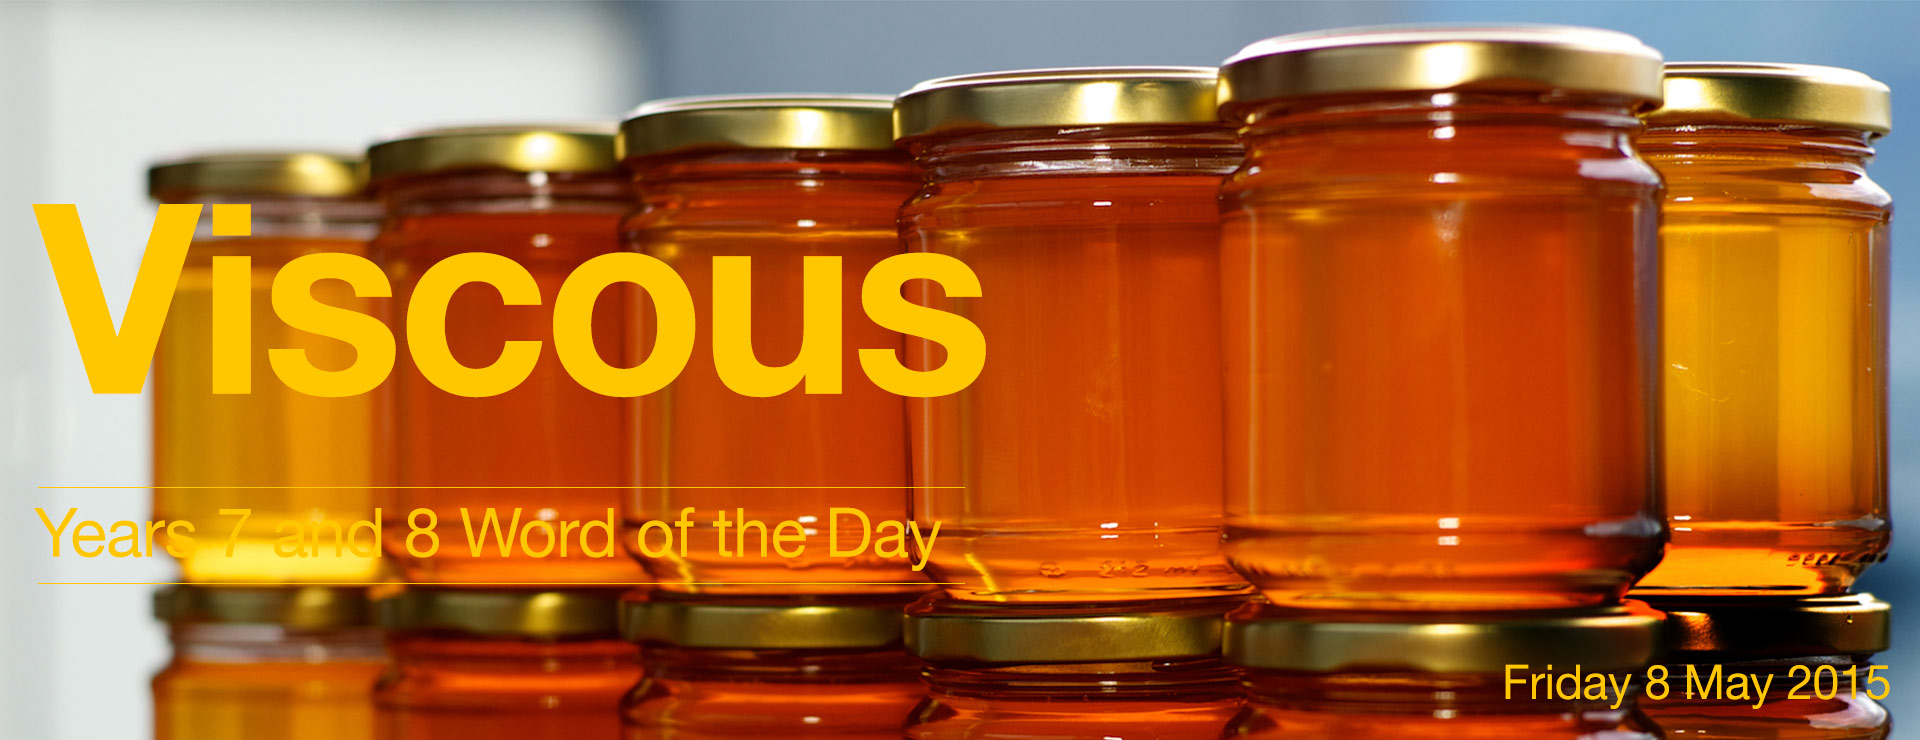 Word-of-the-Day-107.jpg